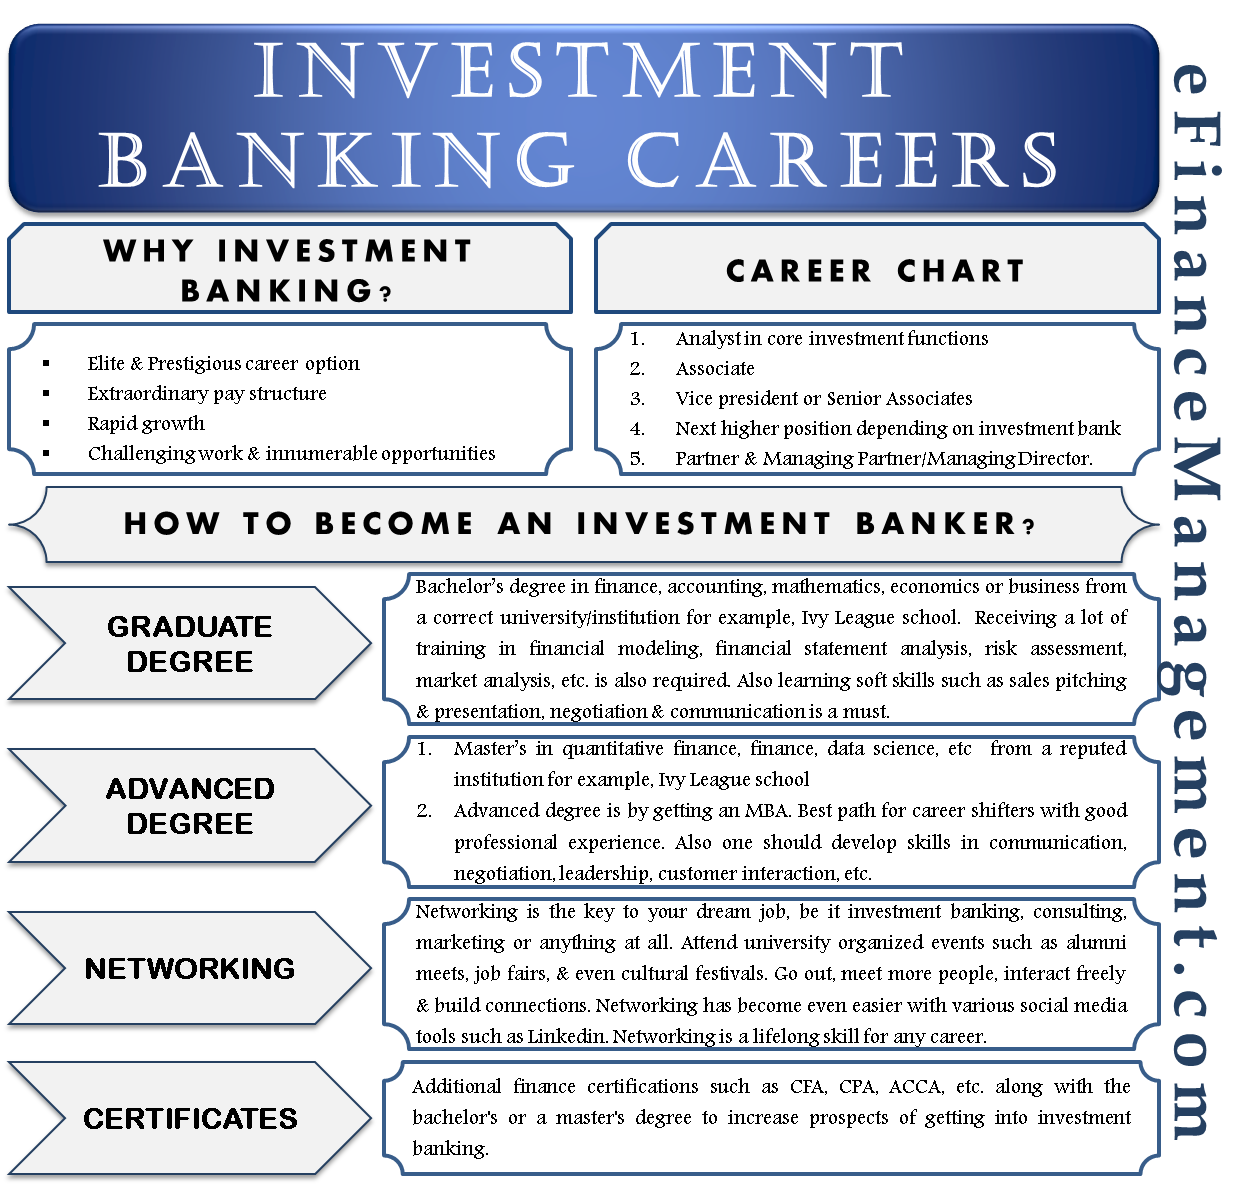 Investment Banking Careers